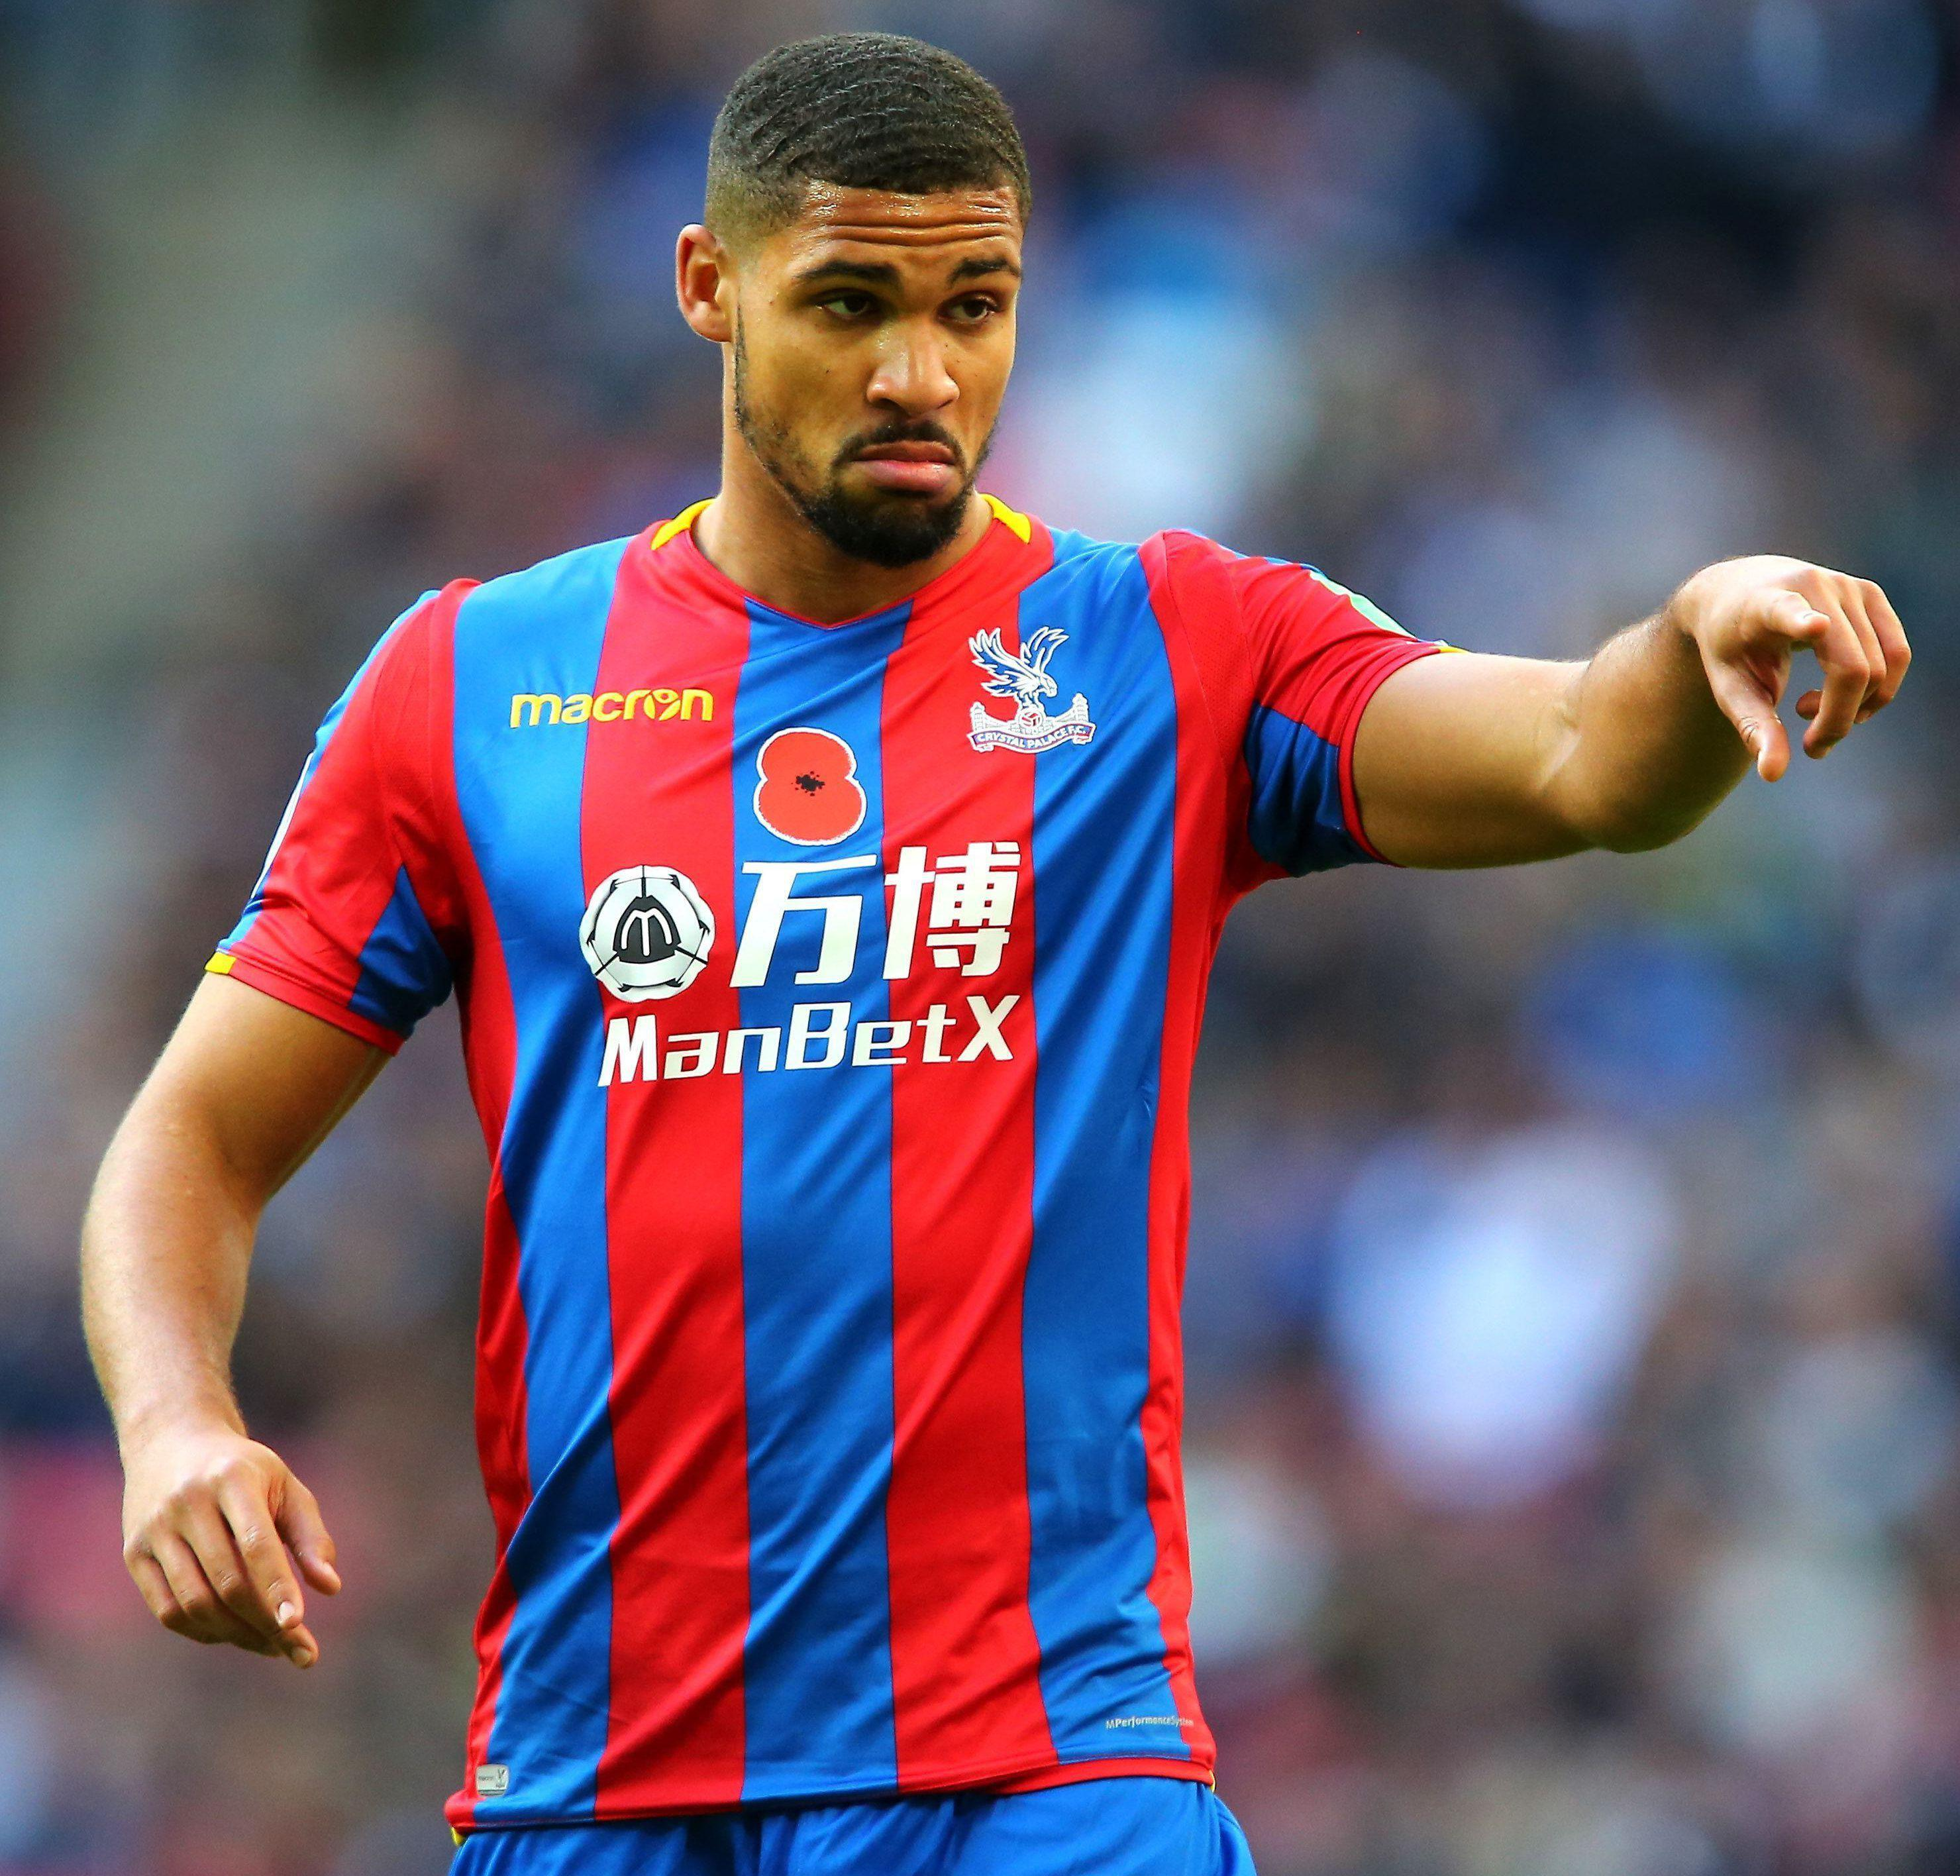 Chelsea starlet Ruben Loftus-Cheek has done well on loan for Palace this term